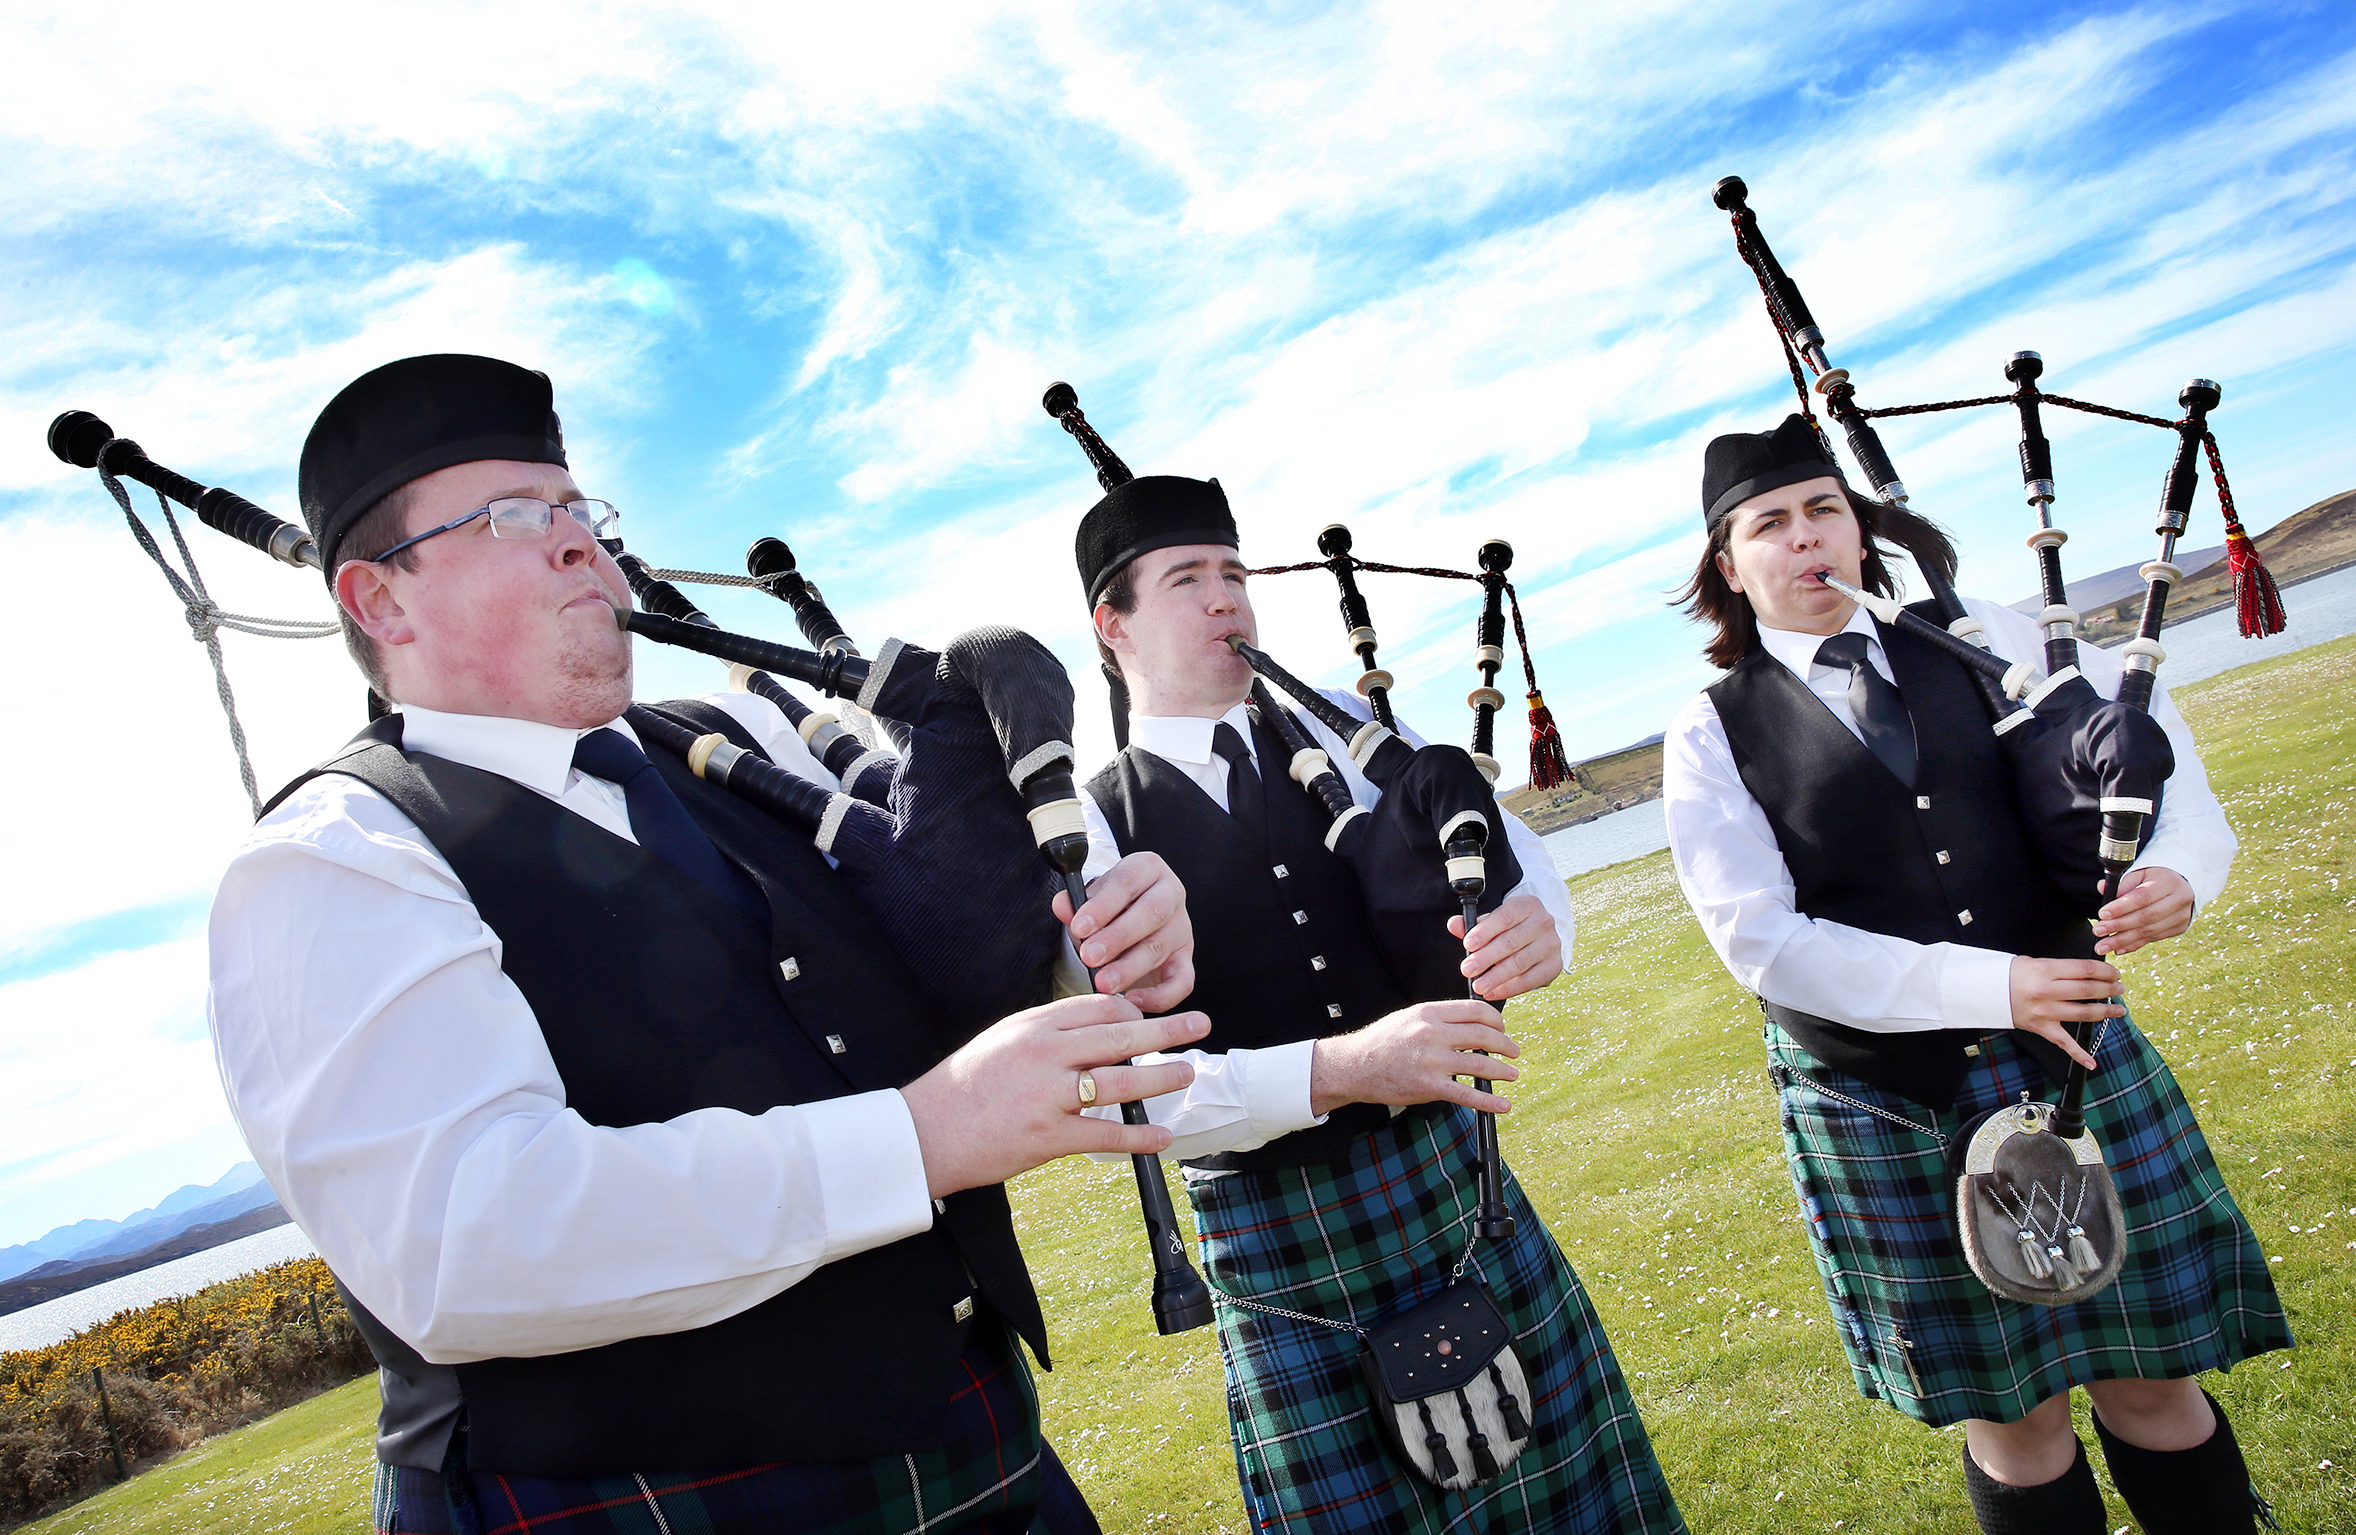 Pipers from the Gairloch and districr pipe band tune-up before taking center stage at Aultbea on Saturday.